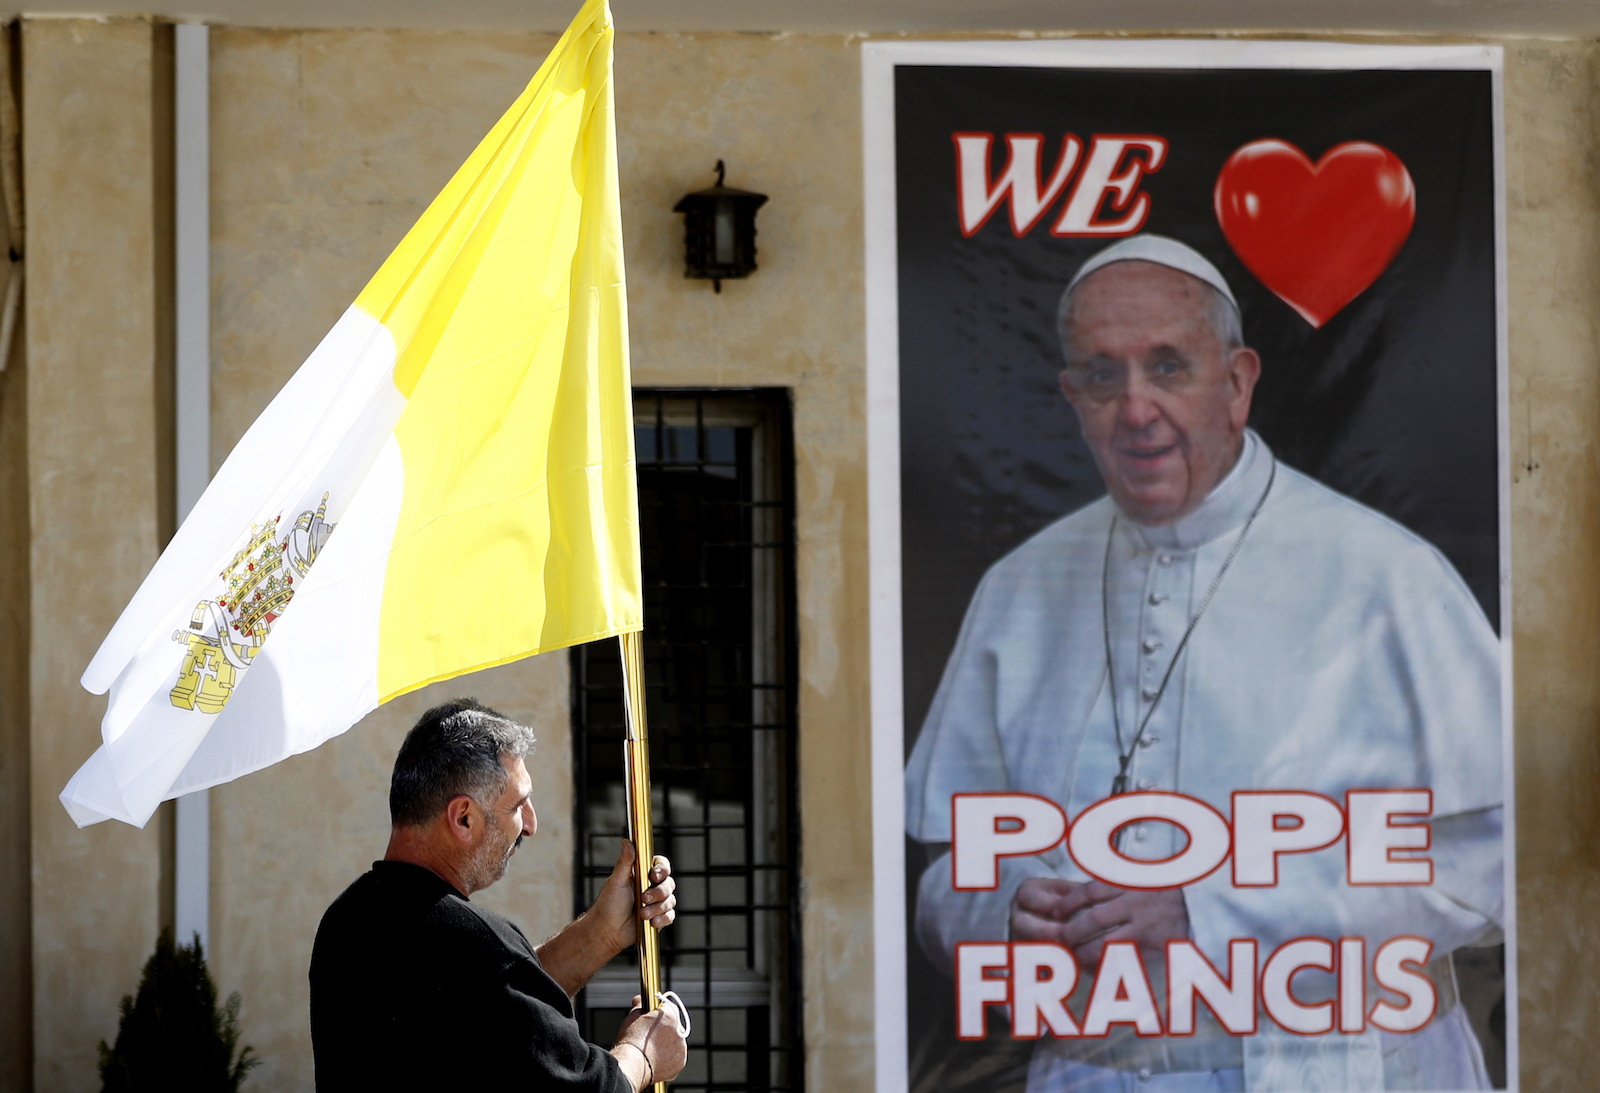 A Christian priest Places a poster of the Pope Francis and a Vatican flag during preparations for the Pope's visit in Mar Youssif Church in Baghdad, Iraq, Friday, Feb. 26, 2021. (AP/Photo/Hadi Mizban)